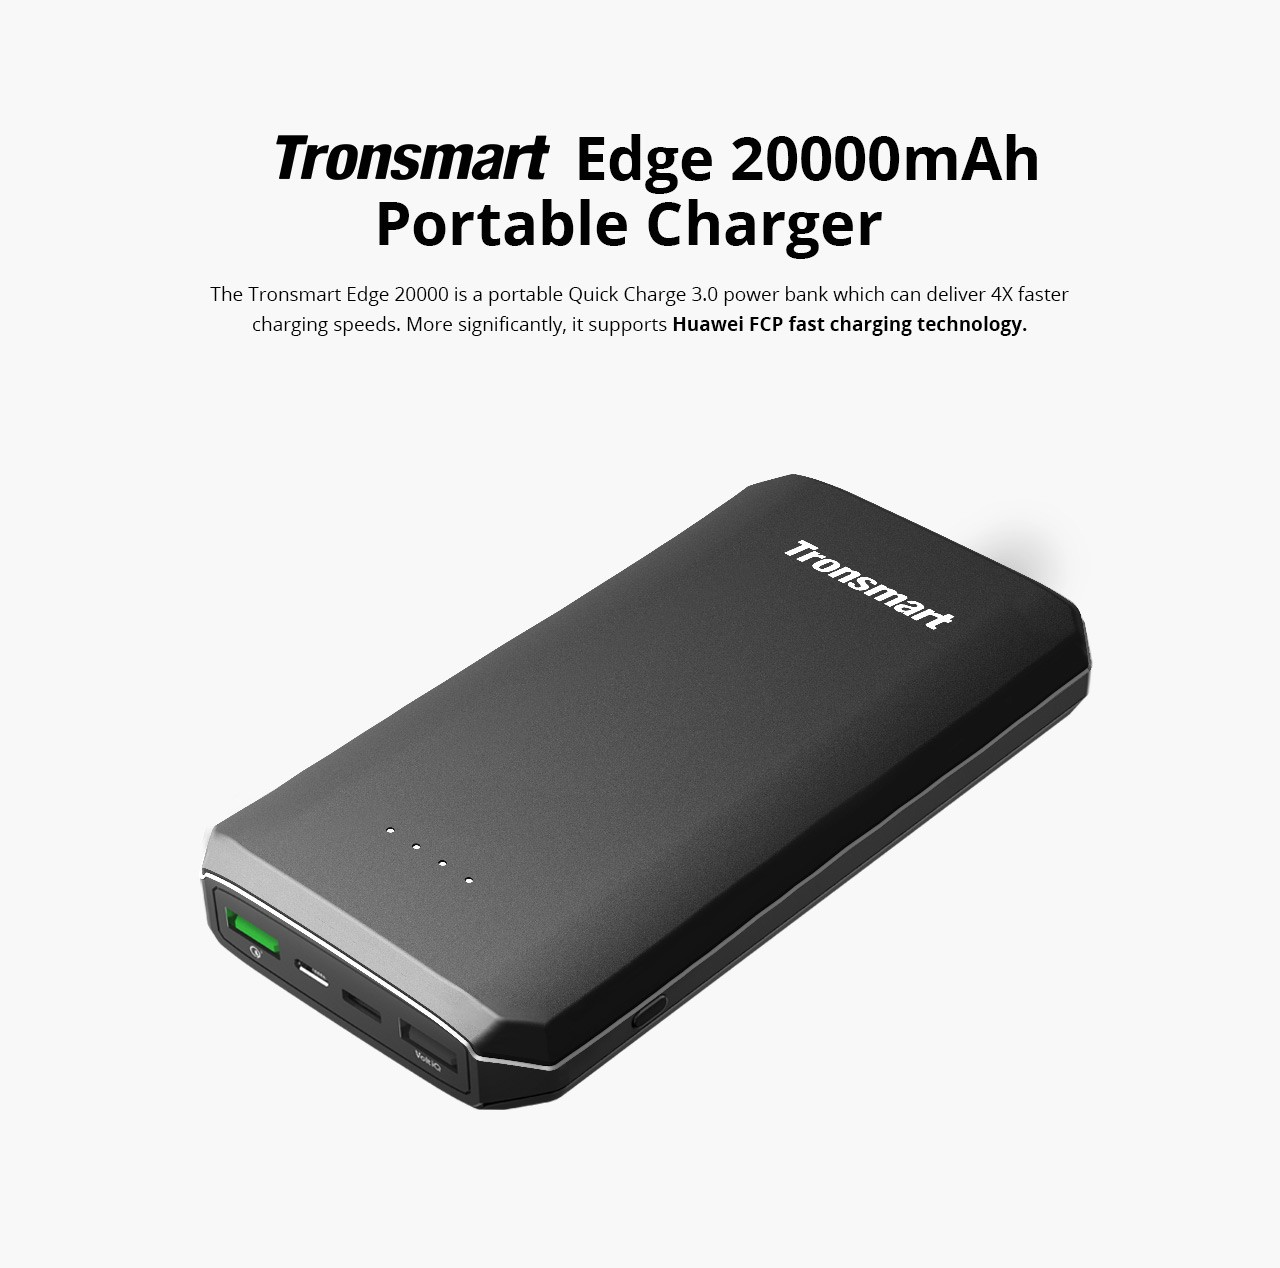 Every Need Want Day Tronsmart Presto Power Bank 1 Port Usb Type C 10400mah With Qualcomm Quick Charge 30 Pbt12 Black Product Includes 18 Month Worry Free Warranty